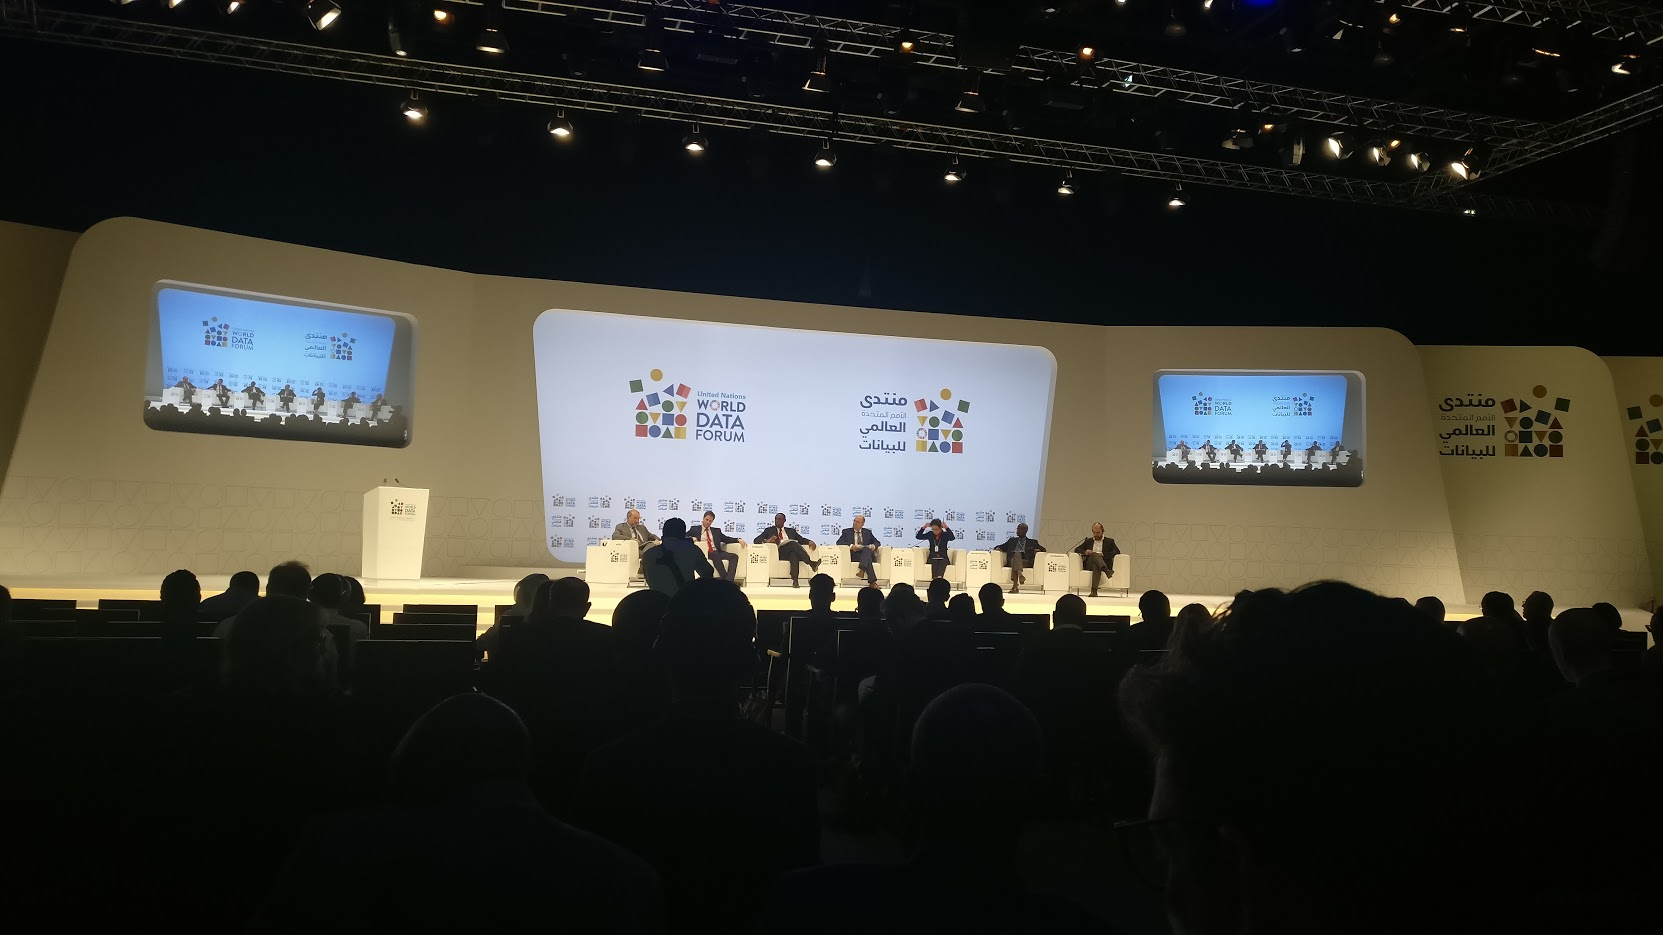 UN Data Forum: My experience with data and daydreaming